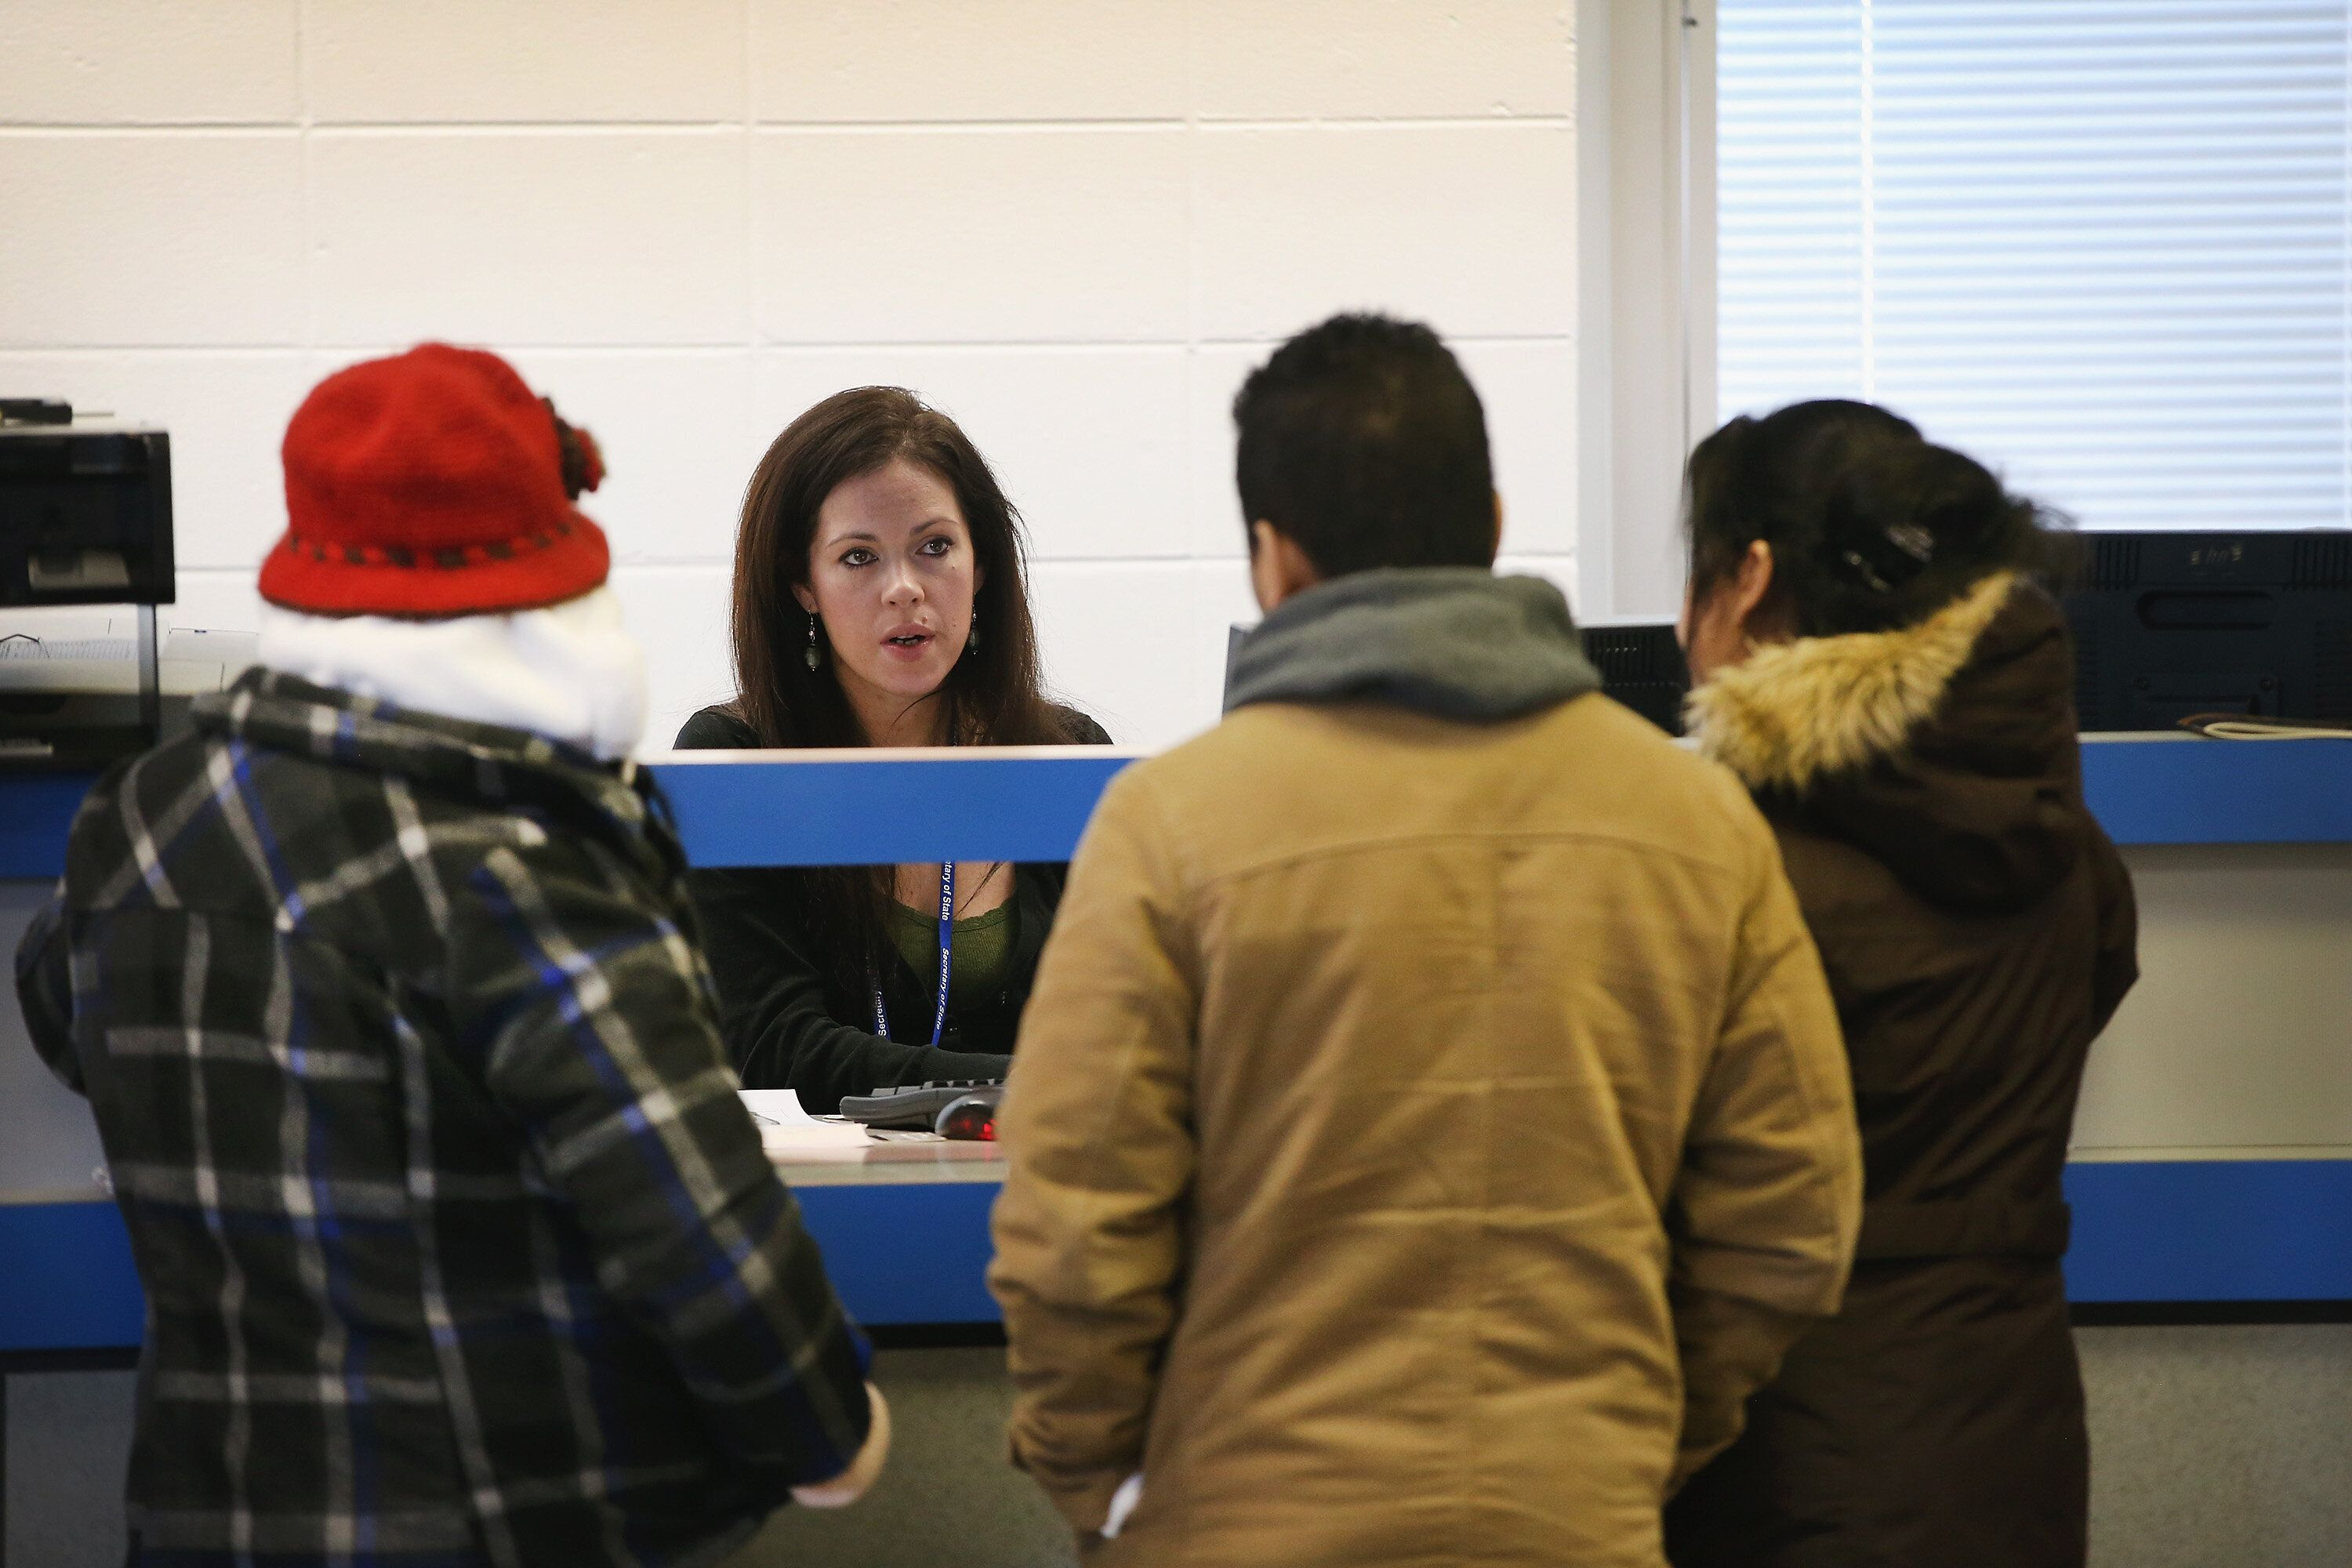 Residents apply for or renew their driver's licenses at a driver services facility on Dec. 10, 2013, in Chicago. Illinois' Te